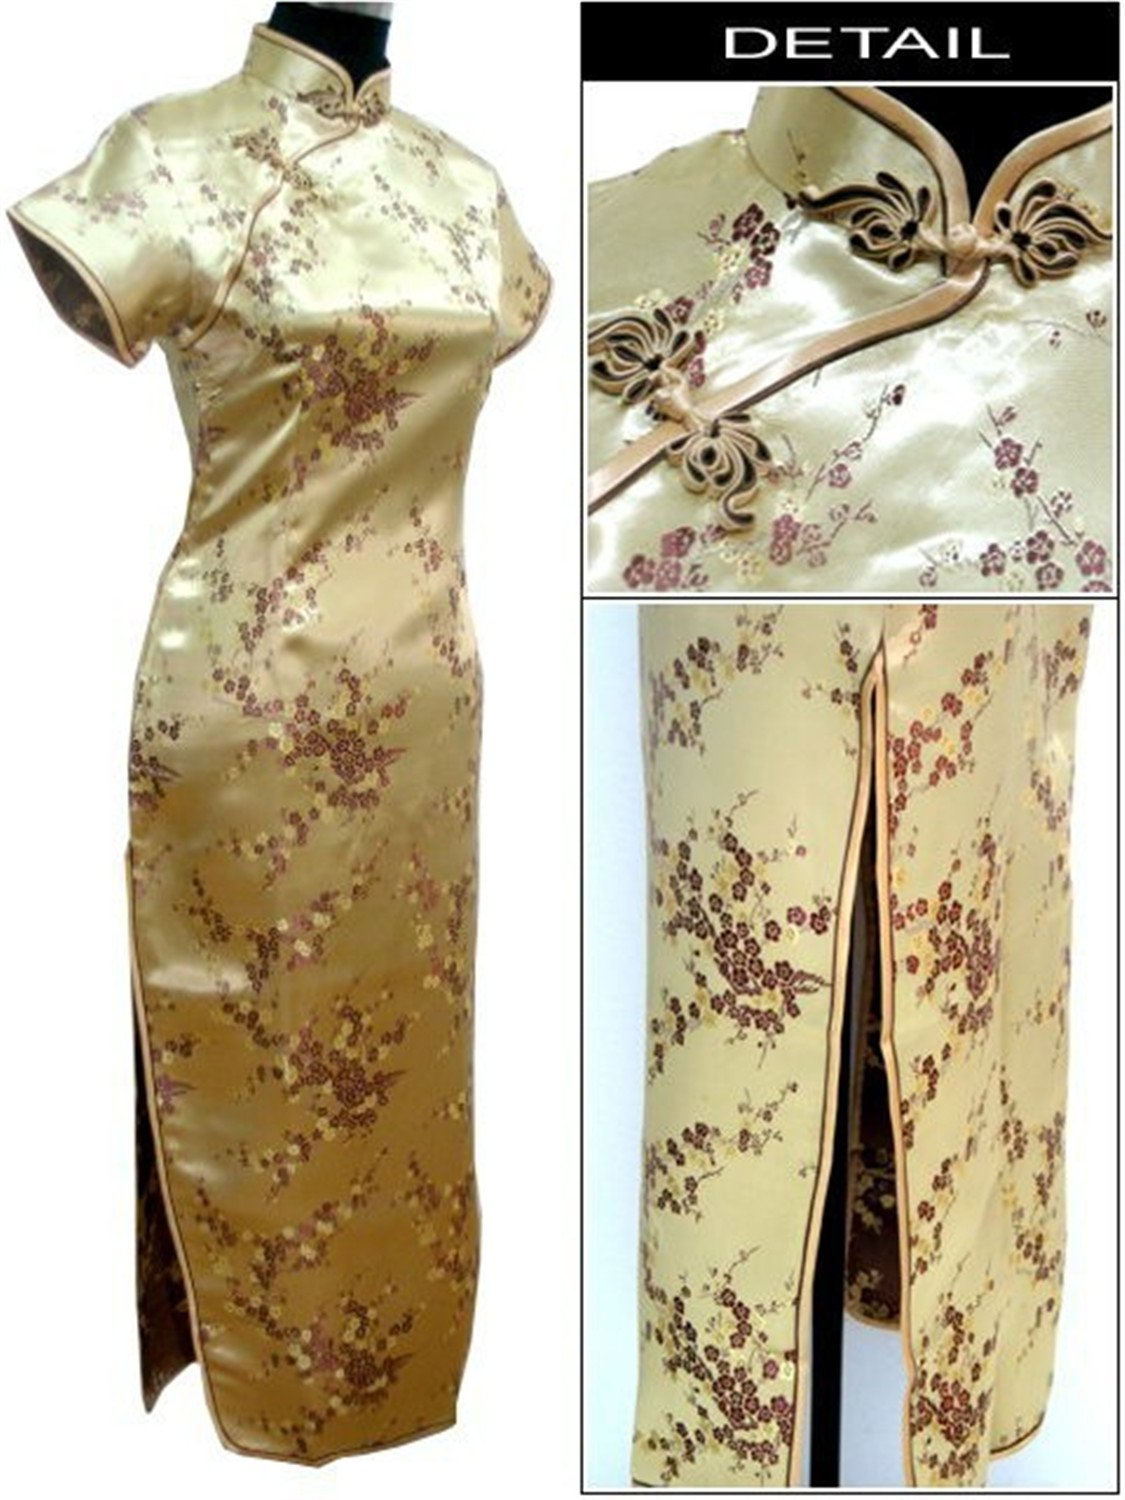 Thytas Black Traditional Chinese Clothing Women's Satin Long Cheongsam Qipao Dress Flower Gold M